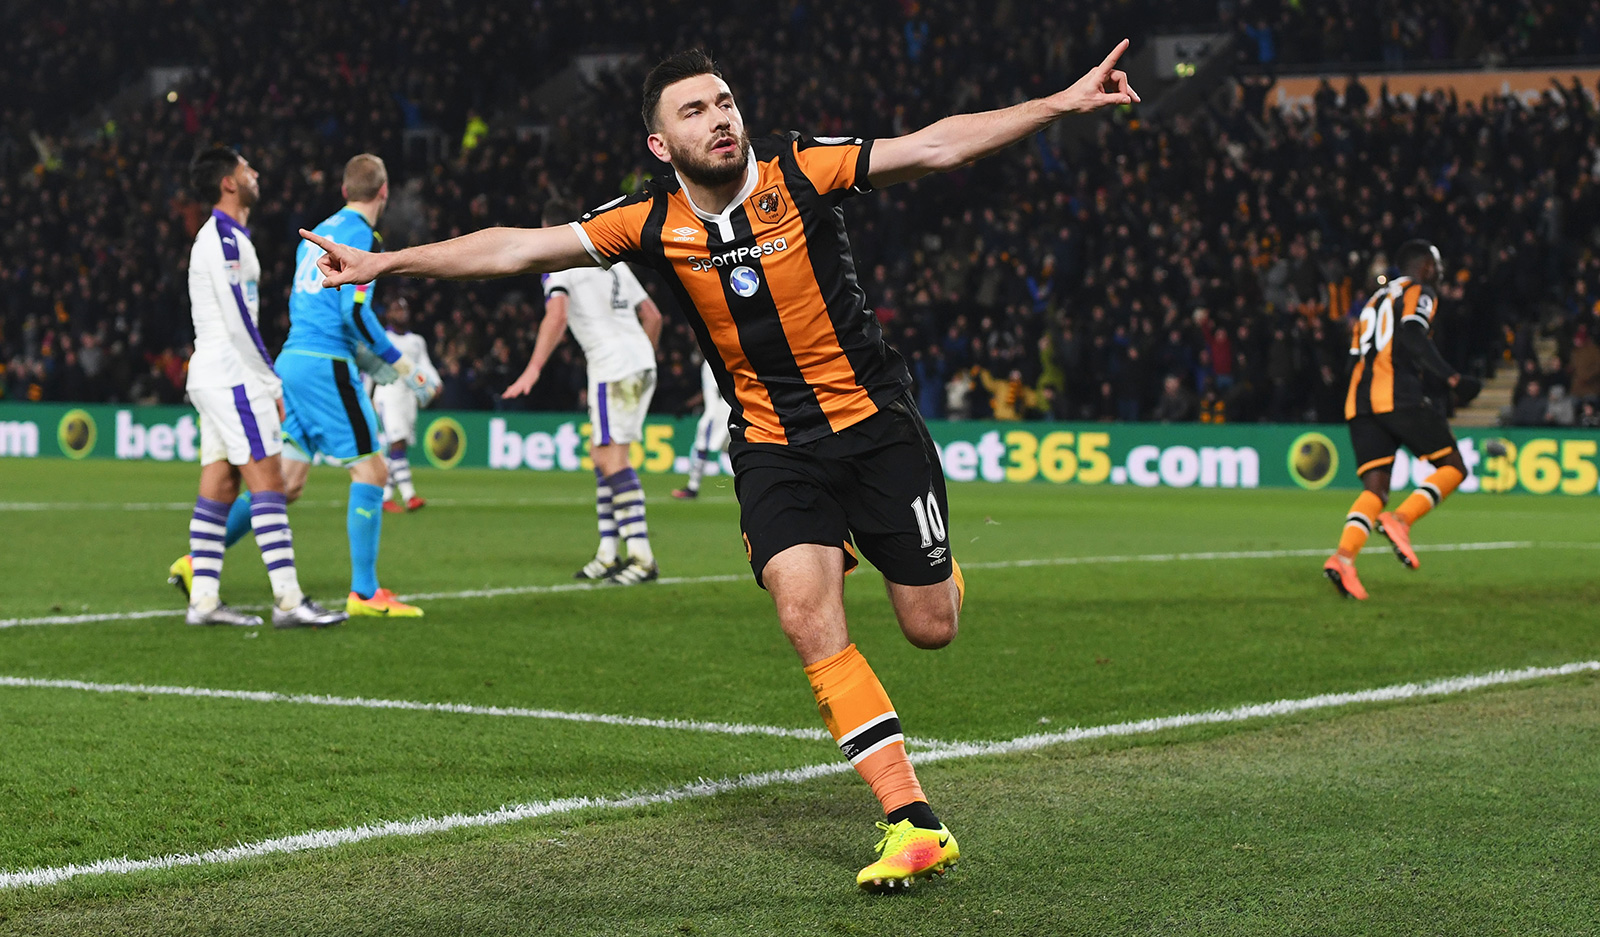 West Ham sign Robert Snodgrass from Hull in £10.2m deal